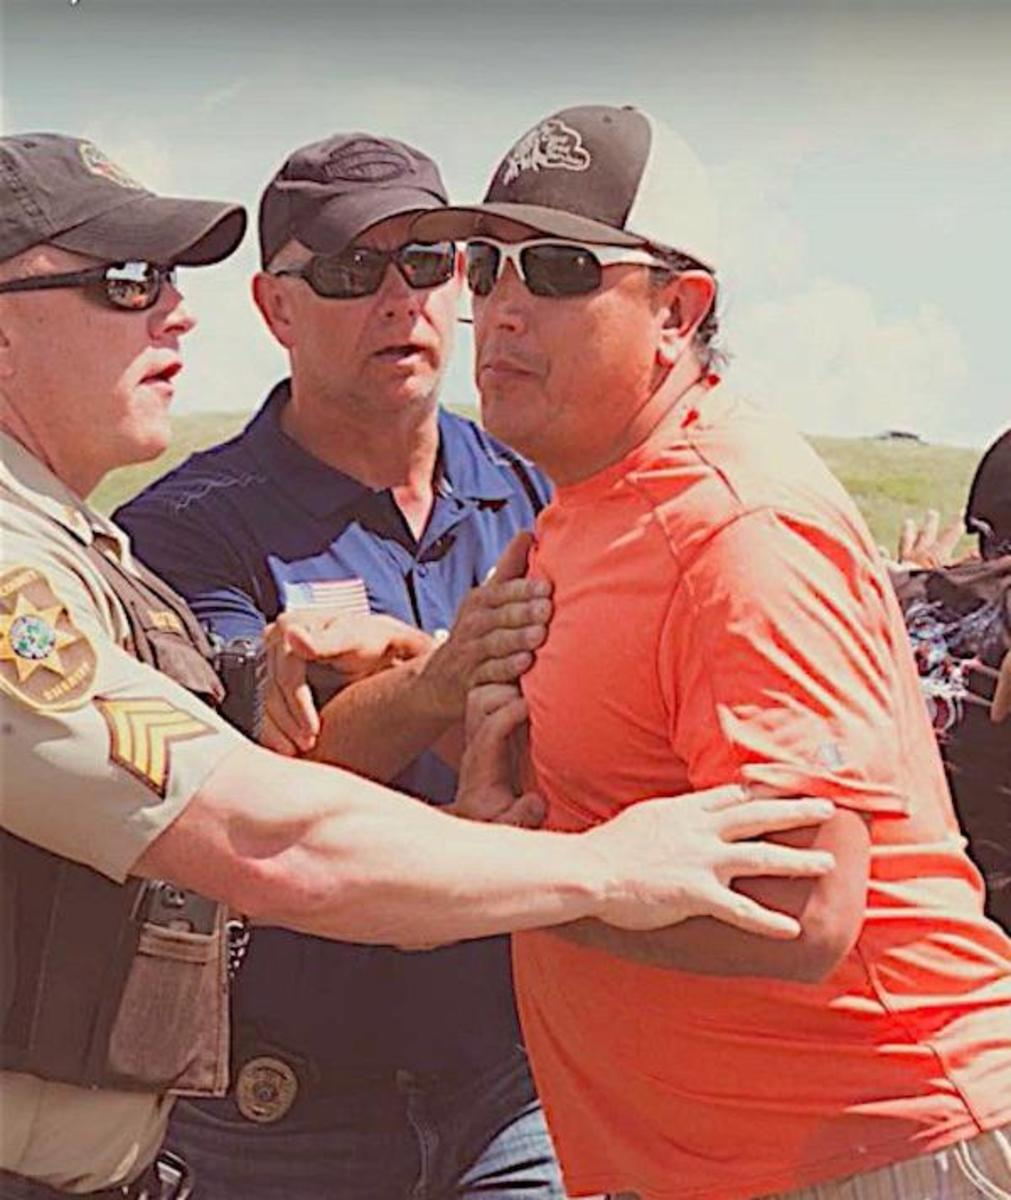 Standing Rock Sioux Tribe Chairman Chairman David Archambault II, in orange shirt, is arrested on August 12 for his part in blockading the Dakota Access oil pipeline construction site.